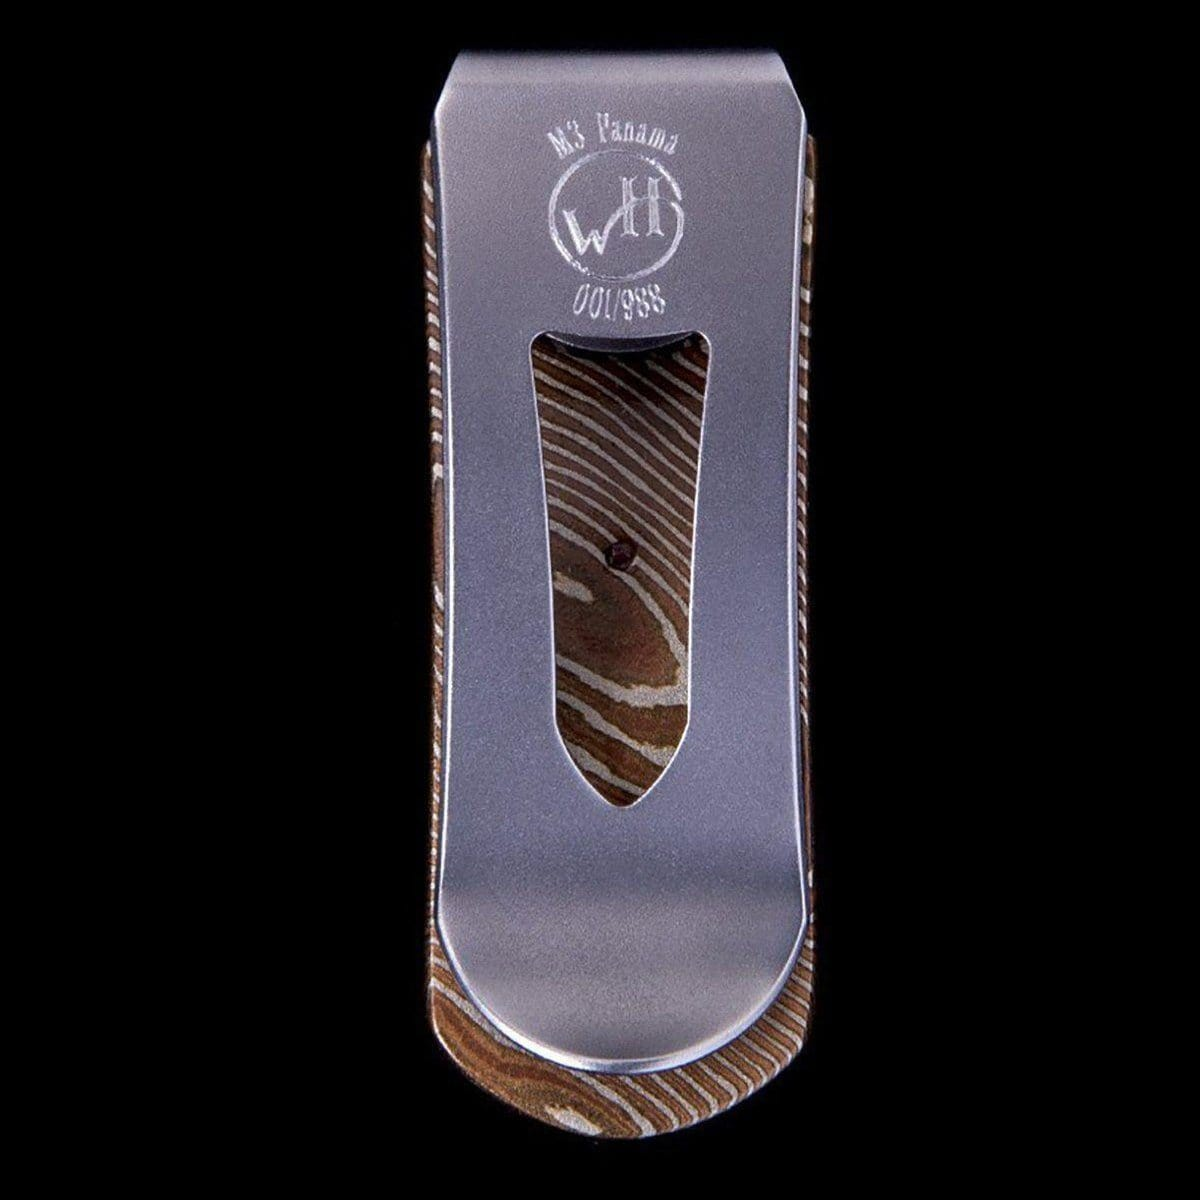 Zurich Panama Limited Edition Money Clip - M3 PANAMA - William Henry